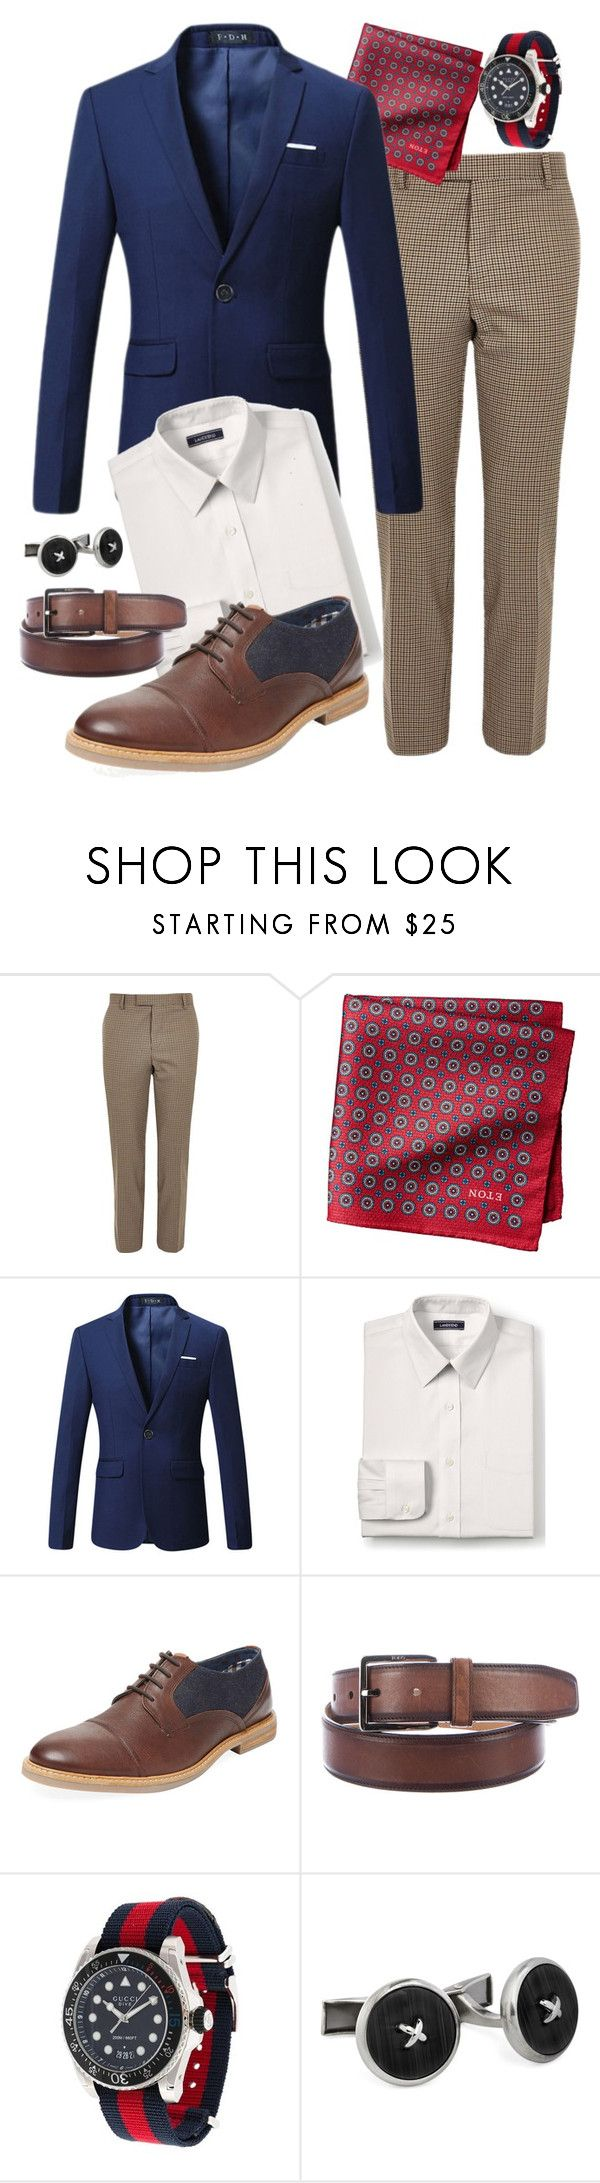 """Suit Without a Tie: Look 3"" by duesouthstyle on Polyvore featuring River Island, Lands' End, Ben Sherman, Tod's, Gucci, Hart Schaffner Marx, men's fashion and menswear"